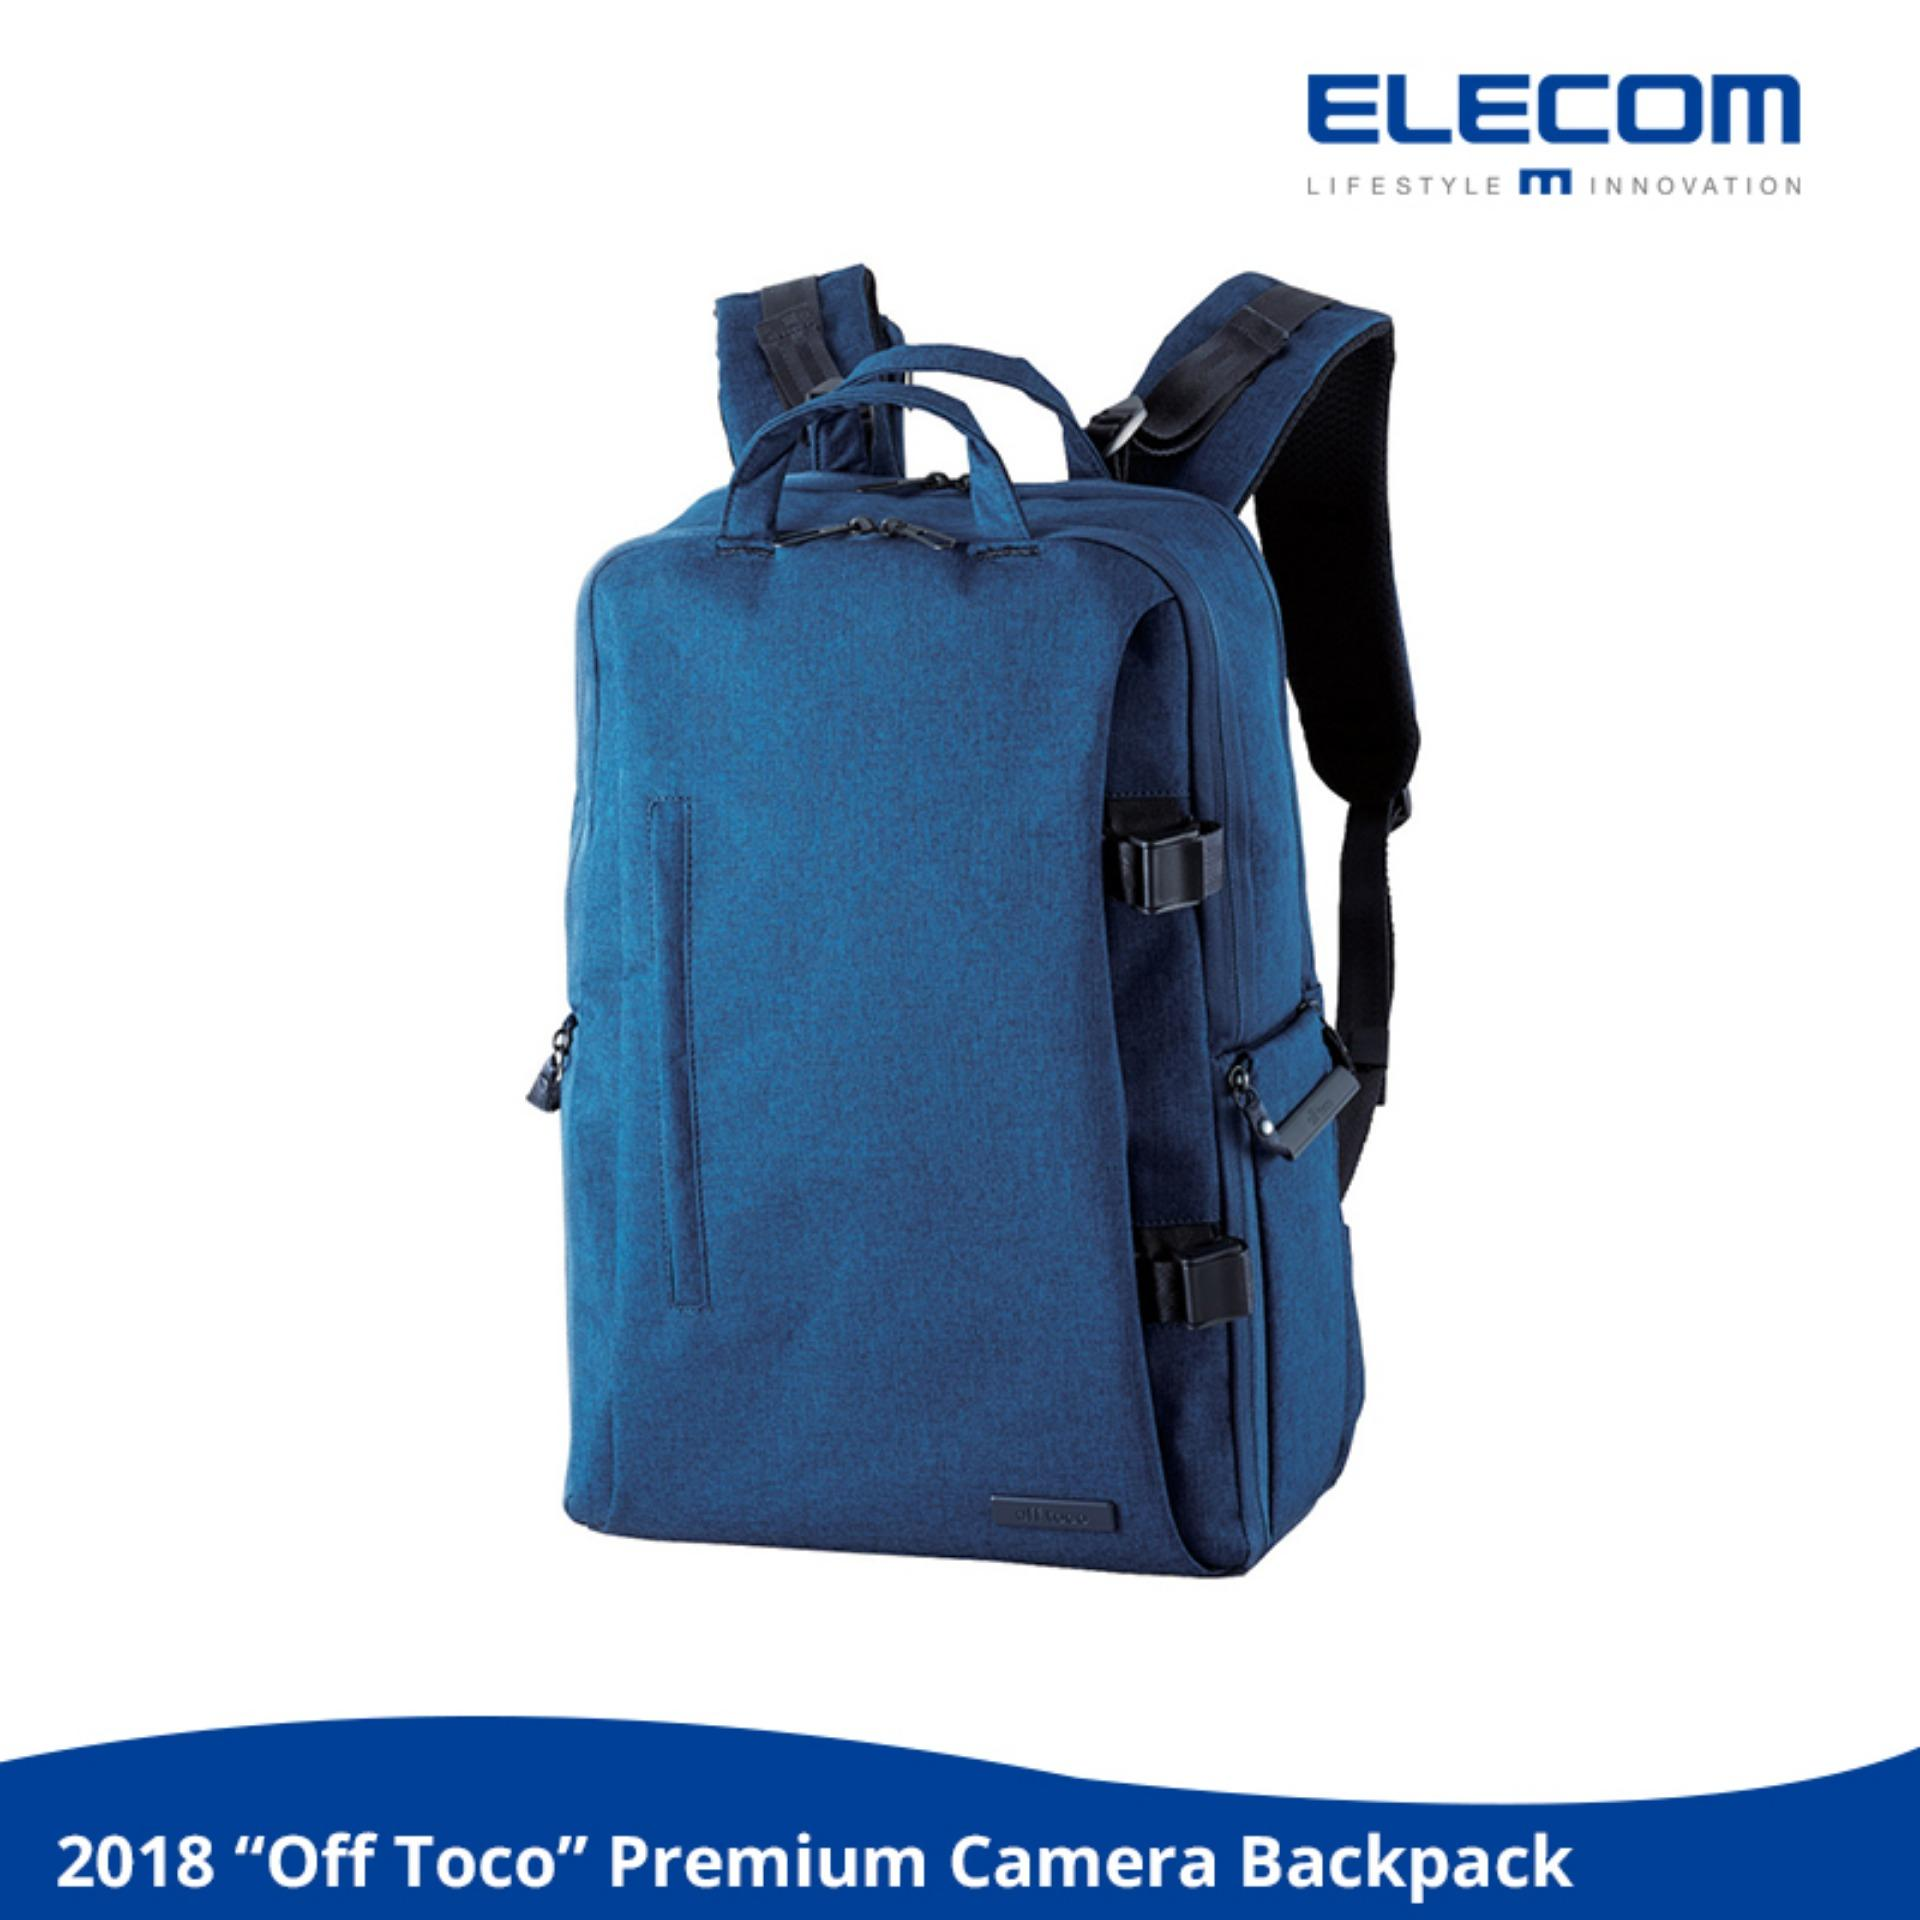 Compare Price Elecom Off Toco Premium Camera Backpack L Size 2018 New Model Laptop 15 6Inch Water Resistance Dslr Photography Video Nikon Sony Canon On Singapore